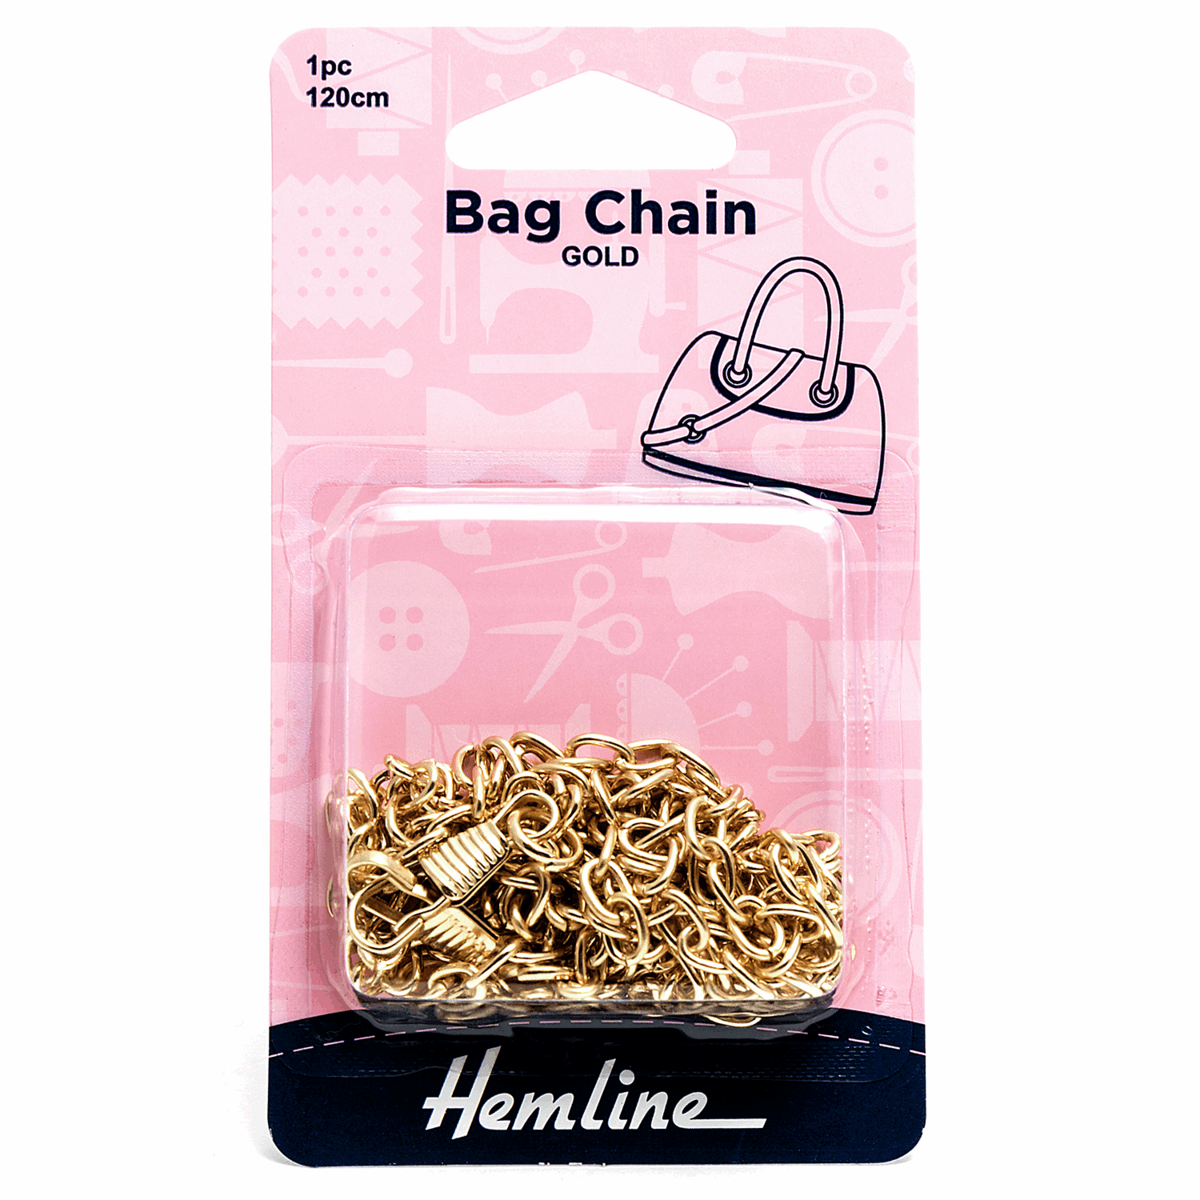 Picture of Bag Chain: 120cm: Gold